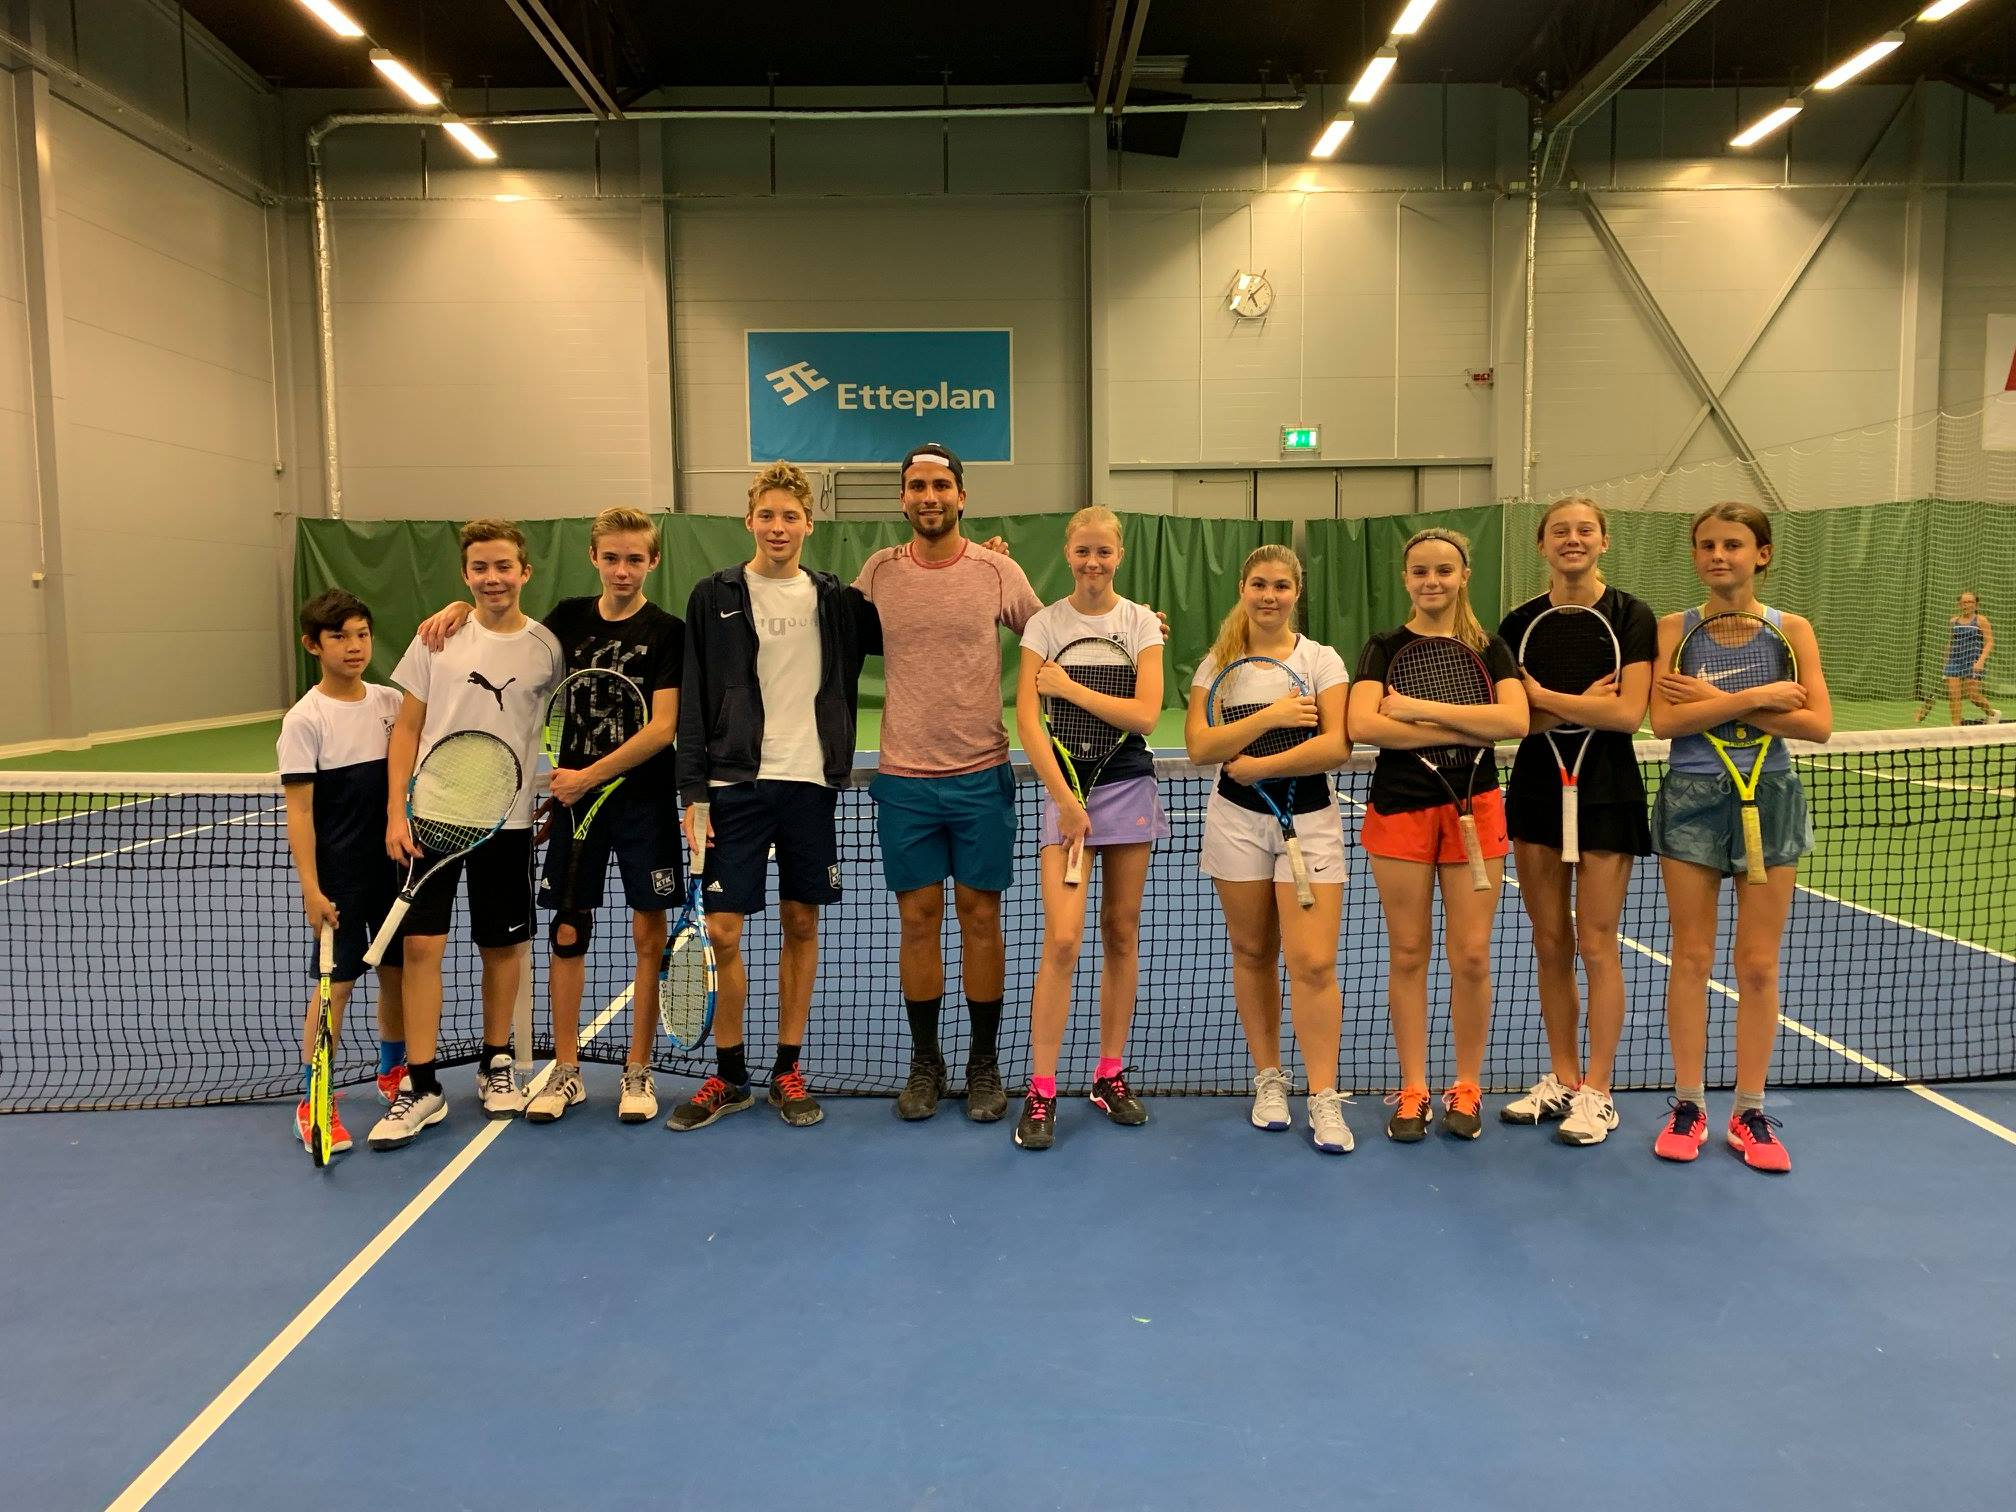 Wanted to share this picture of me and some top Swedish Junior players I got to teach at the Karlstad Tennis Club!